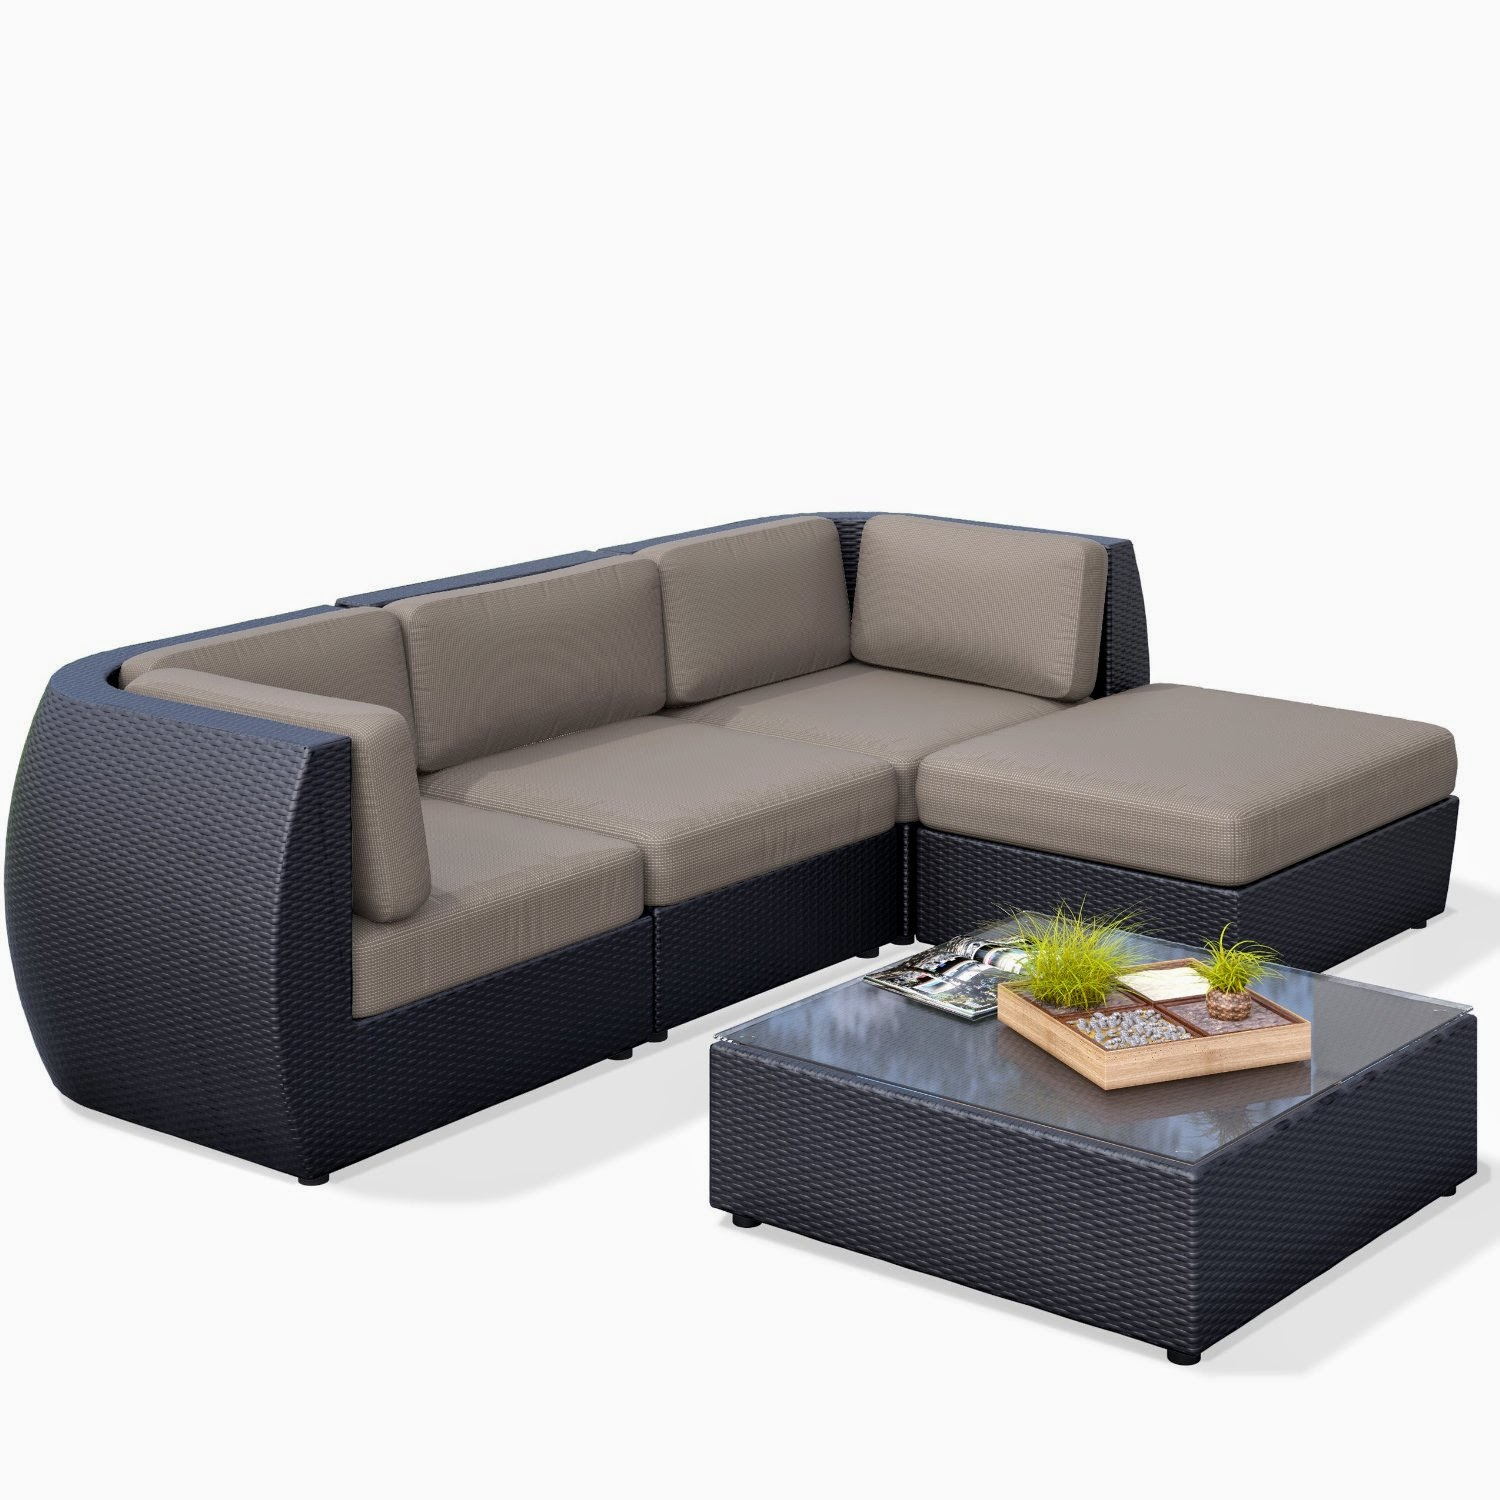 Sofa Camping Slipcovers In Bangalore Curved Outdoor